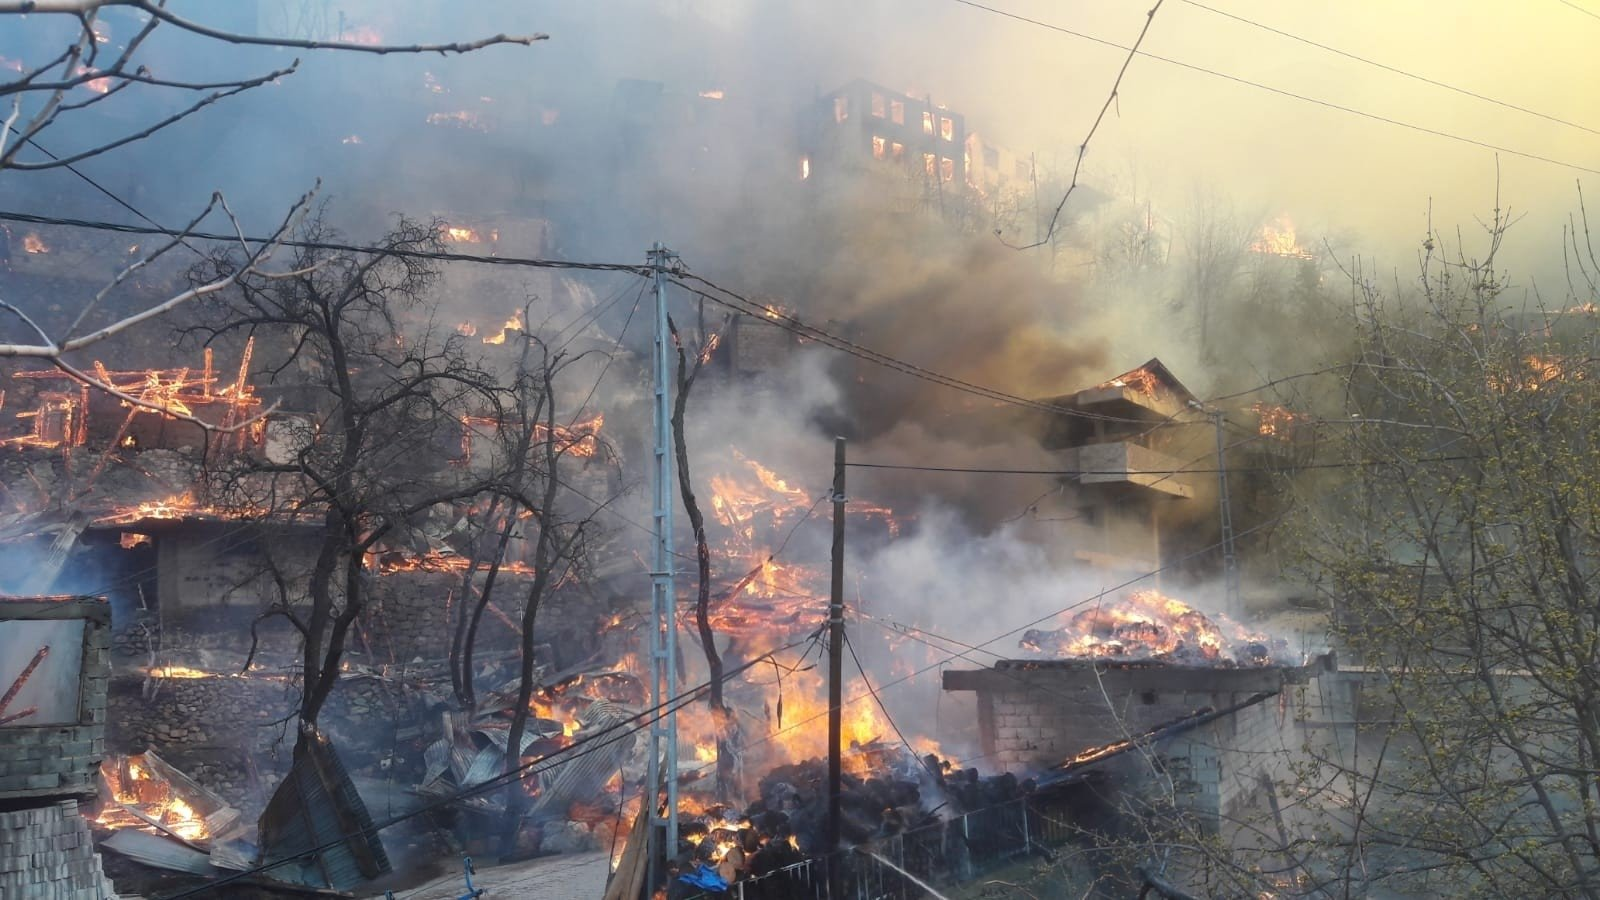 A view of flames engulfing the houses in the village, in Artvin, northeastern Turkey, March 17, 2021. (İHA PHOTO)